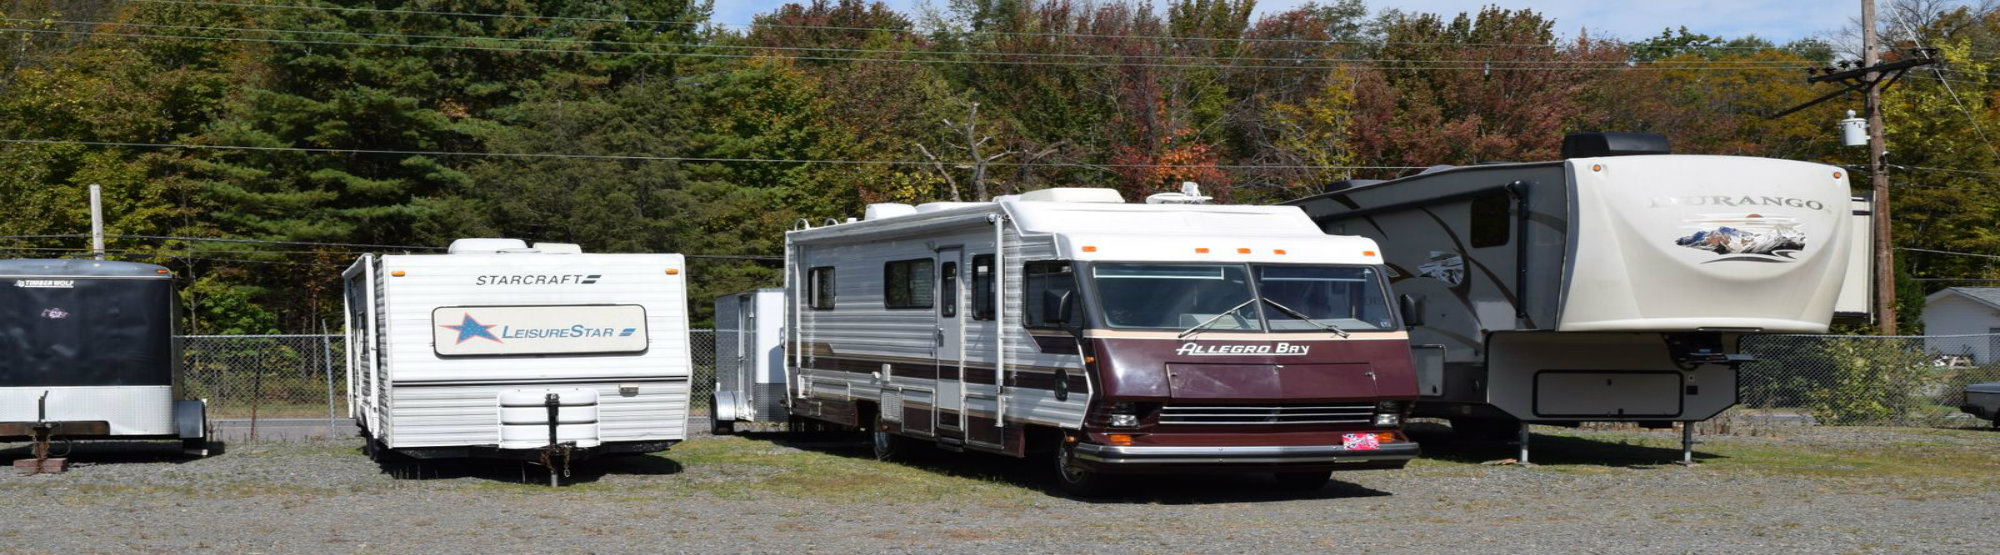 RV and trailer parking in Wymart, PA